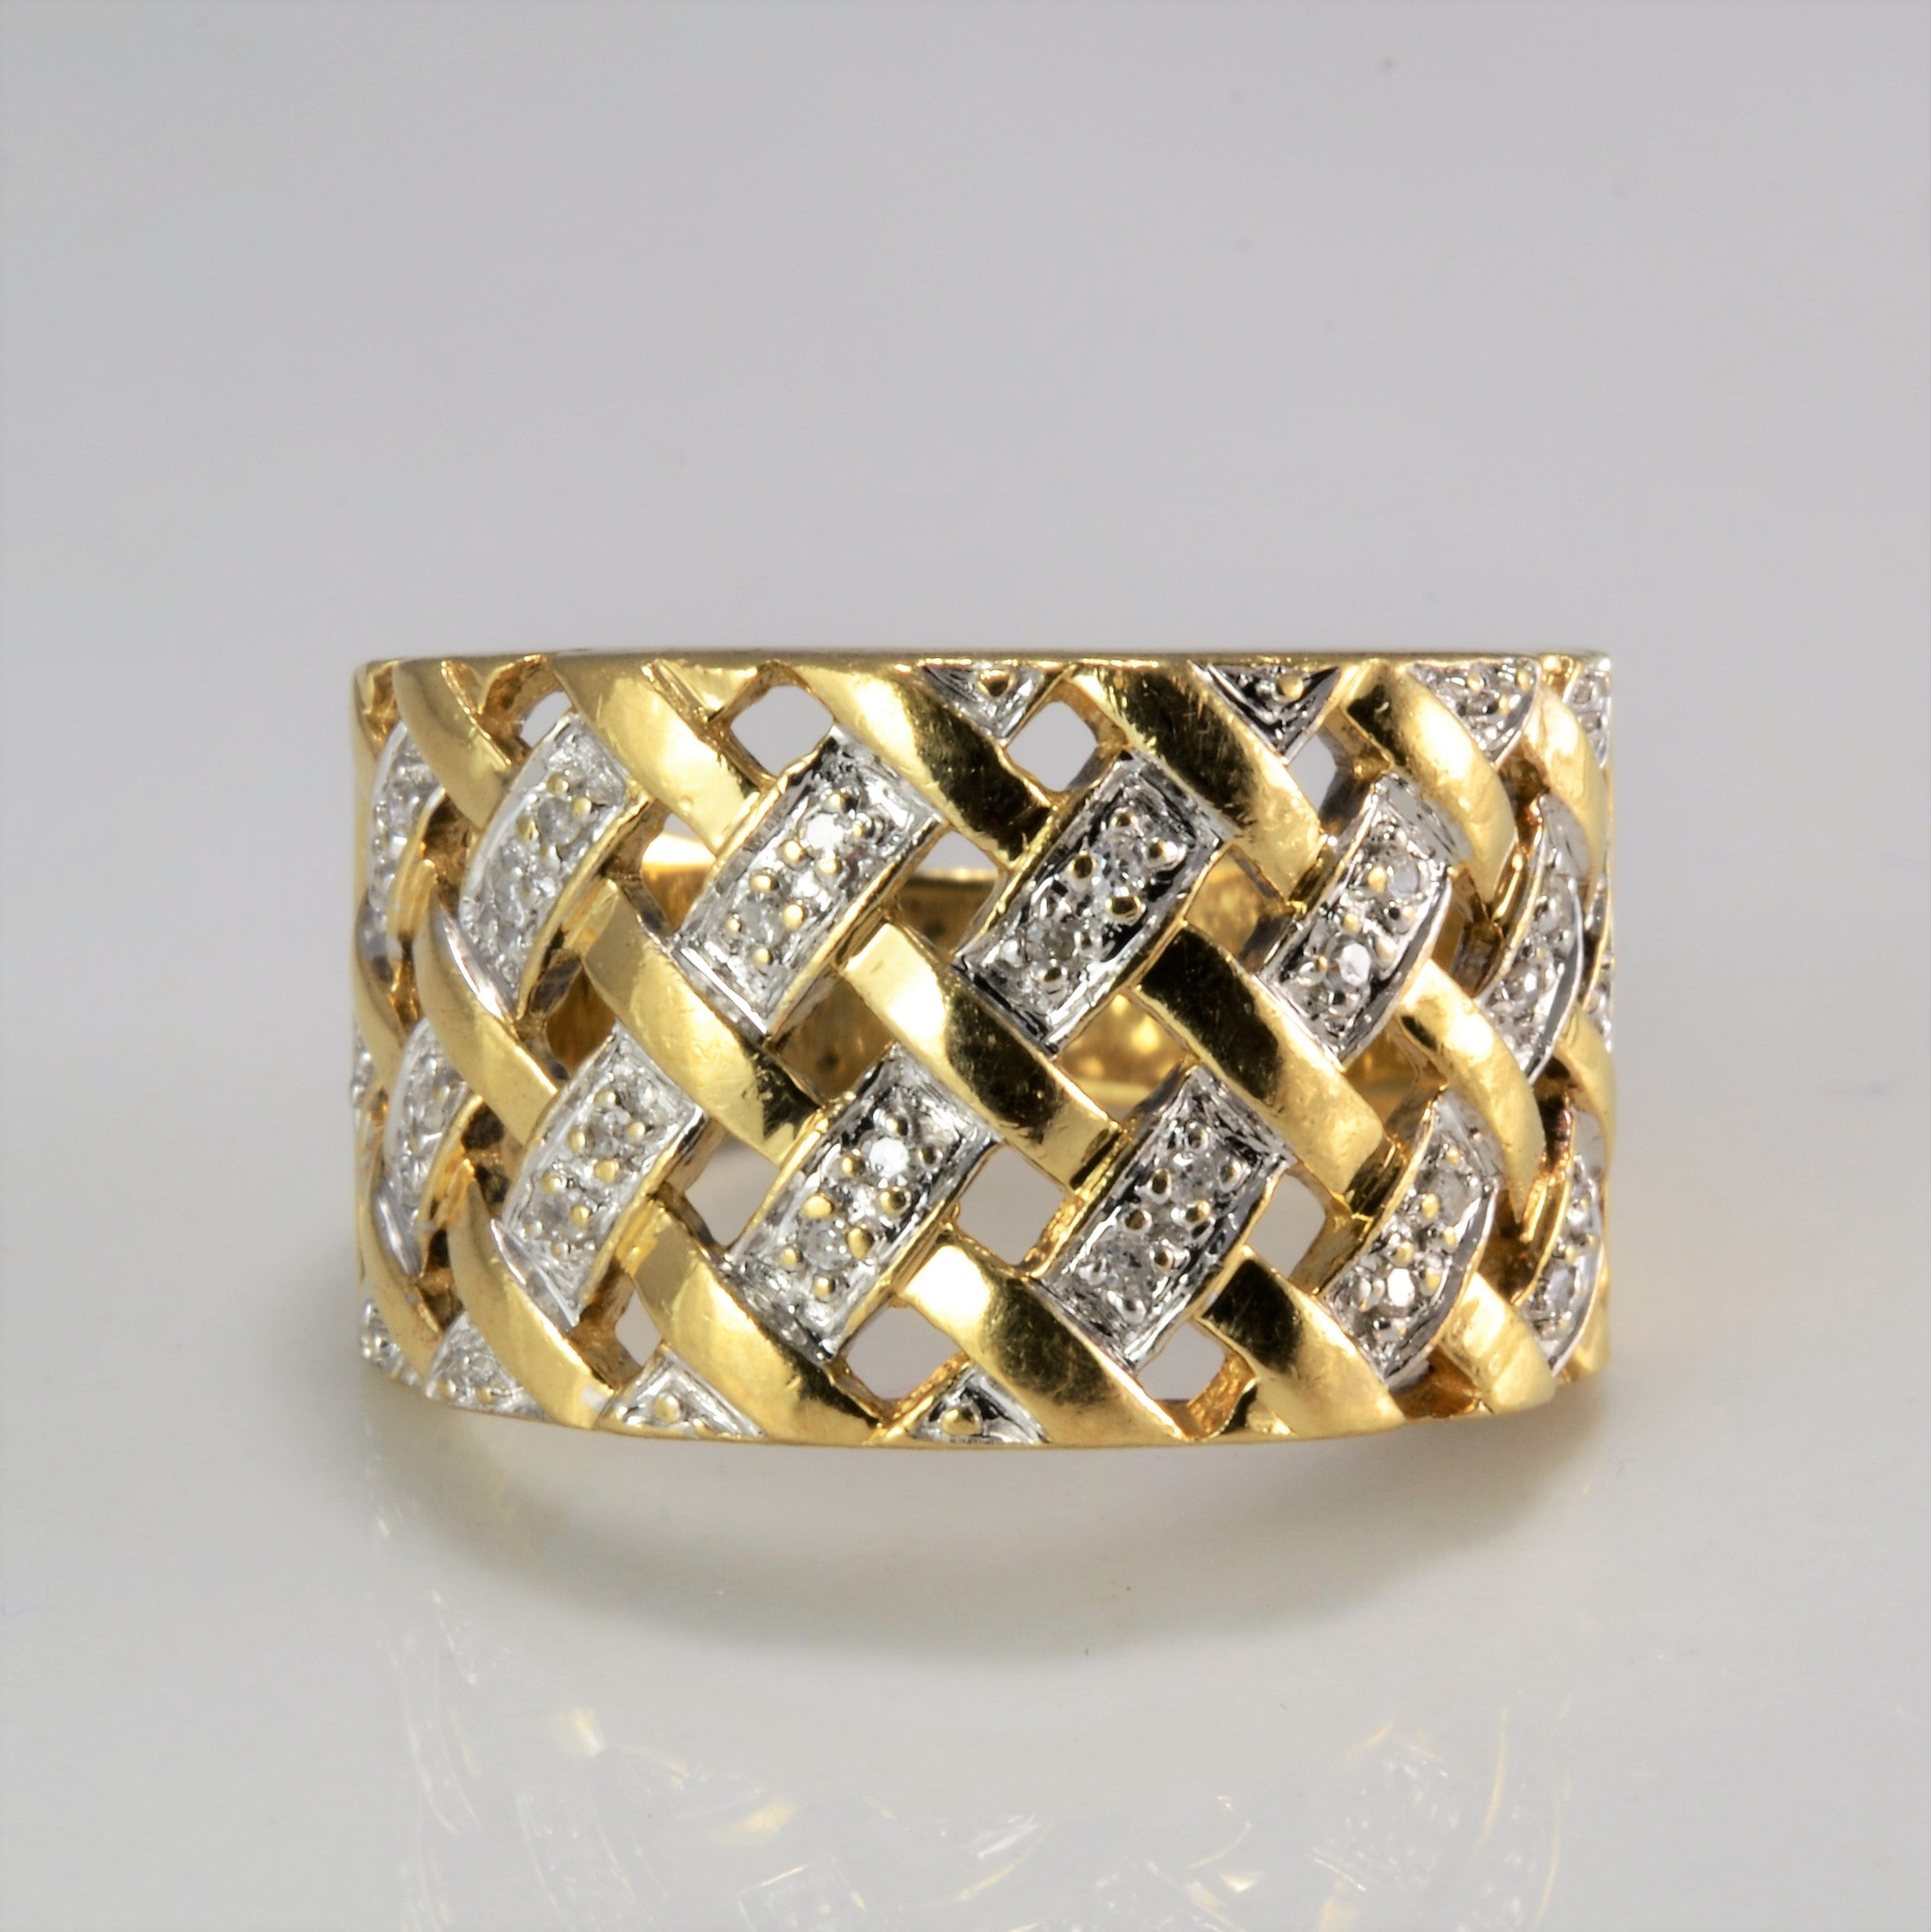 Diamond Accents Woven Wide Ladies Ring | 0.08 ctw, SZ 7 |